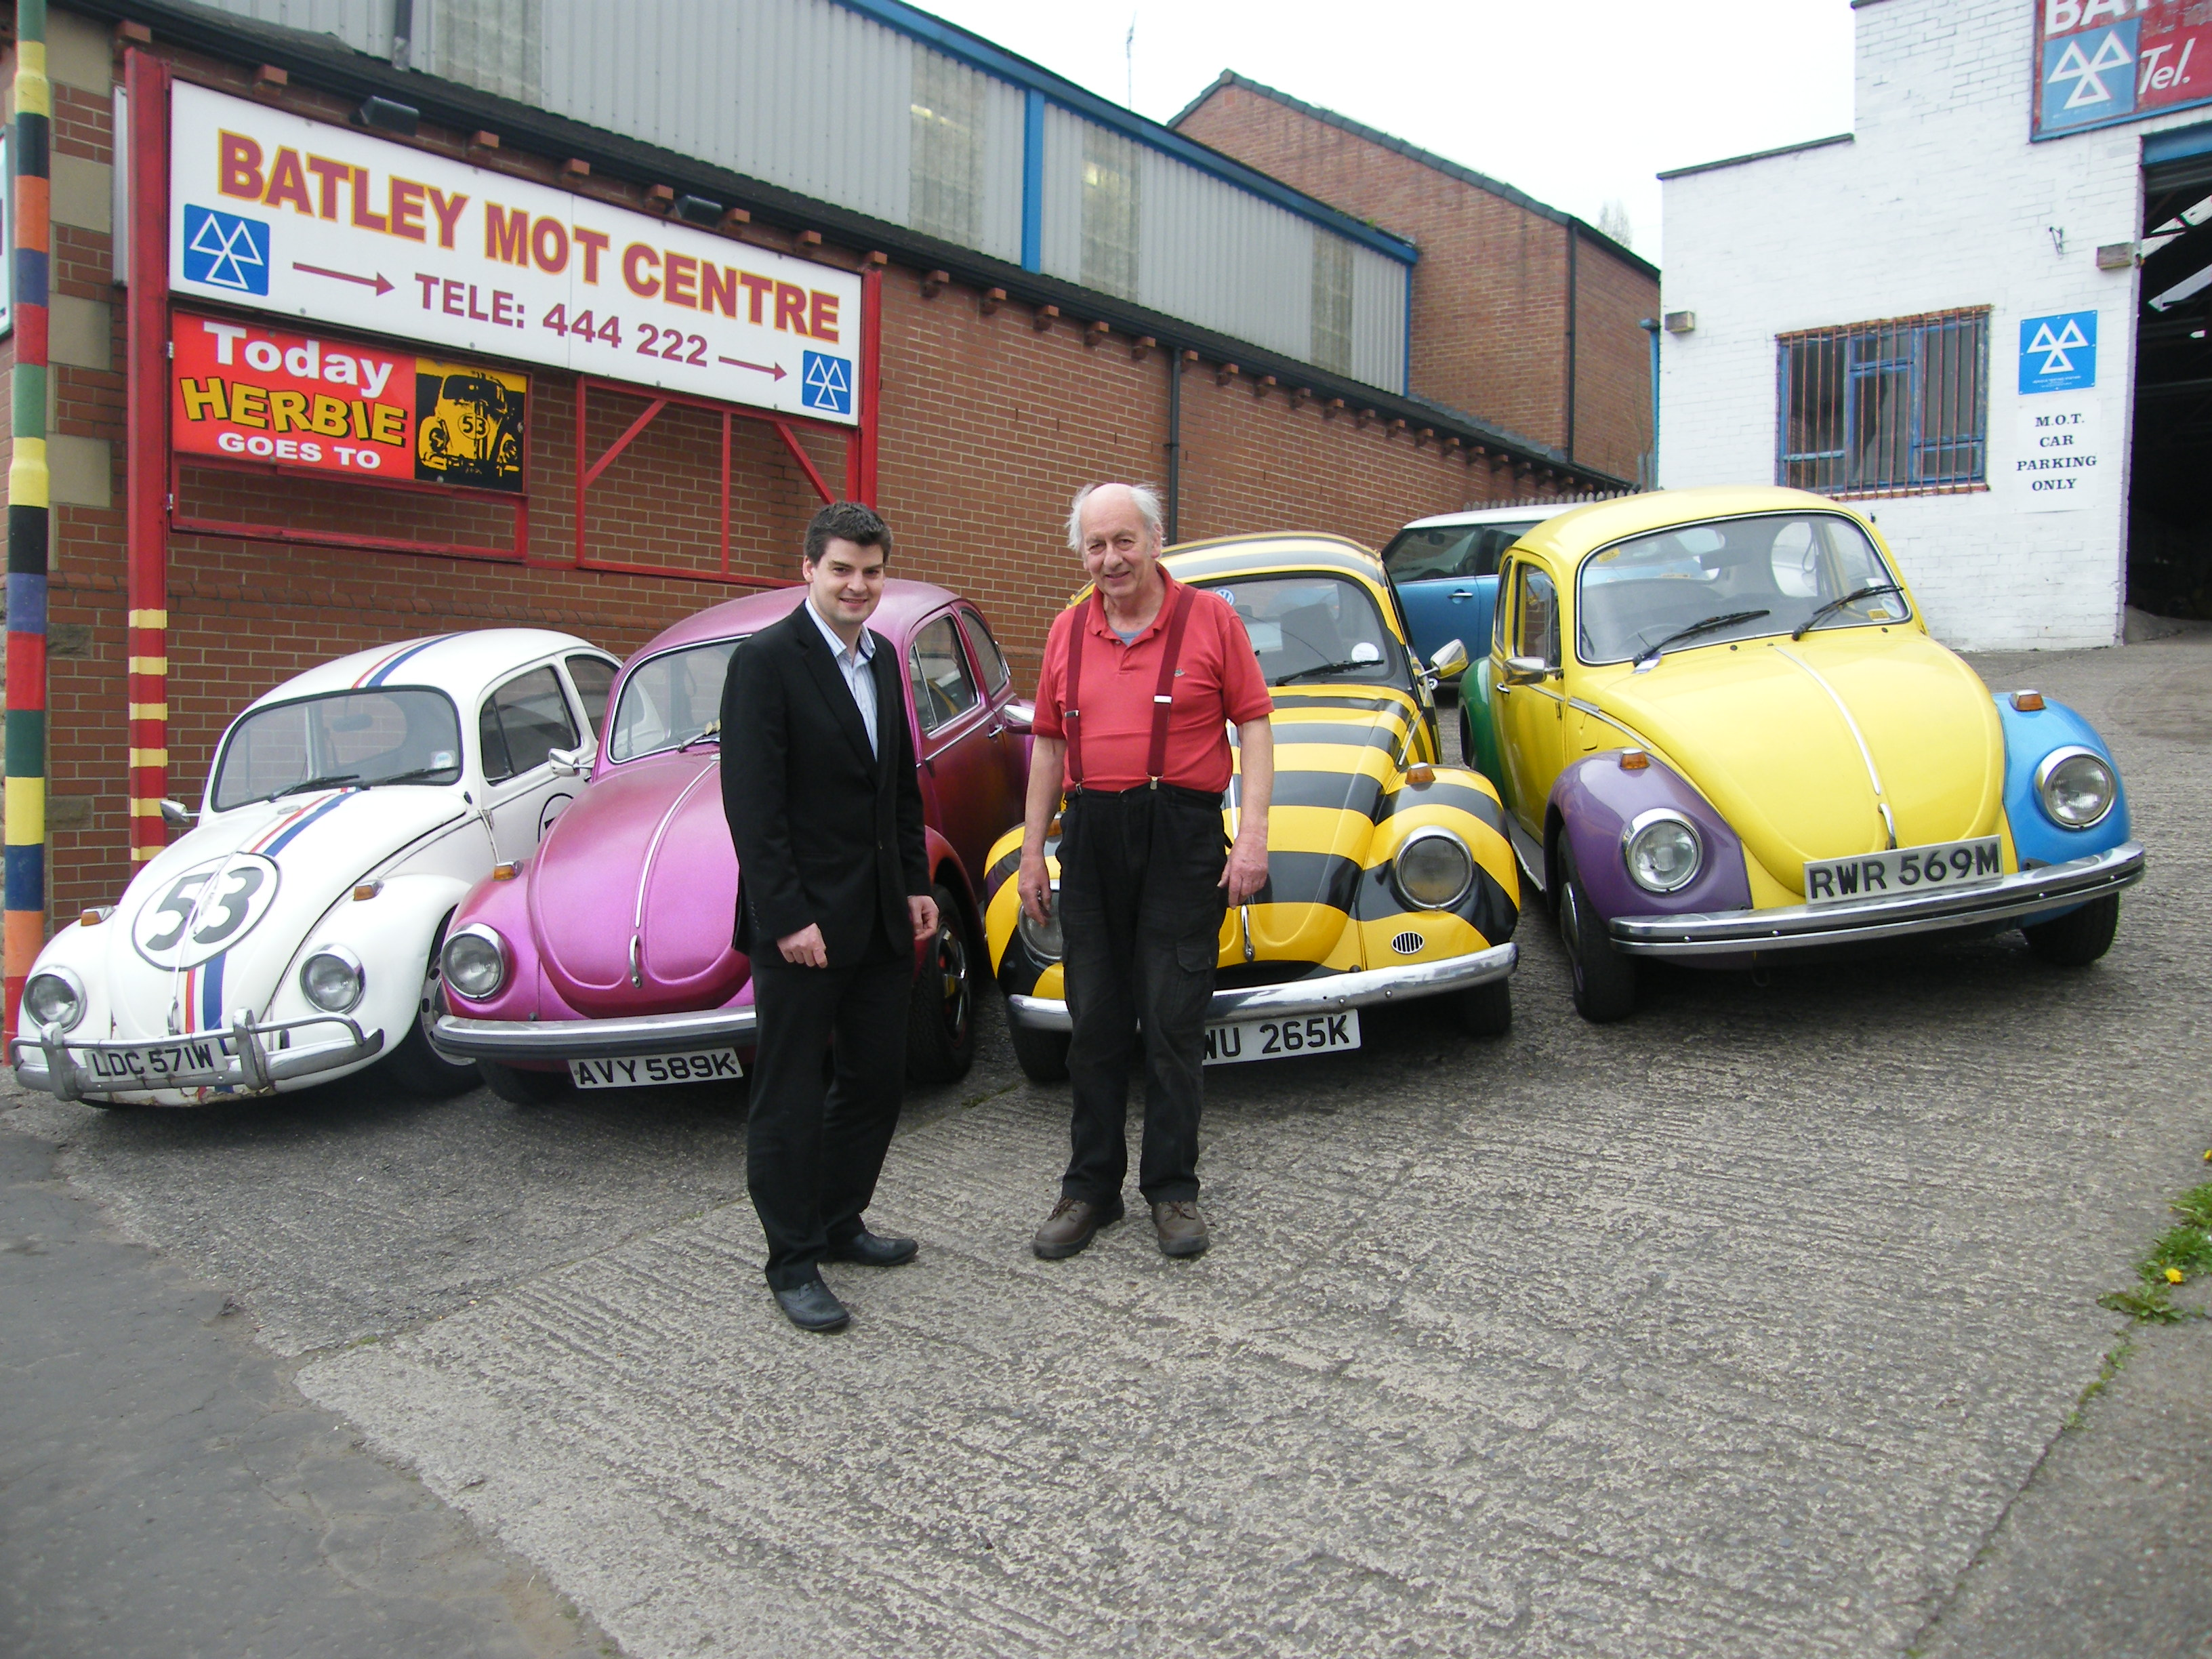 Vintage VW Beetle Collection For Sale By Online Auction | Classic ...